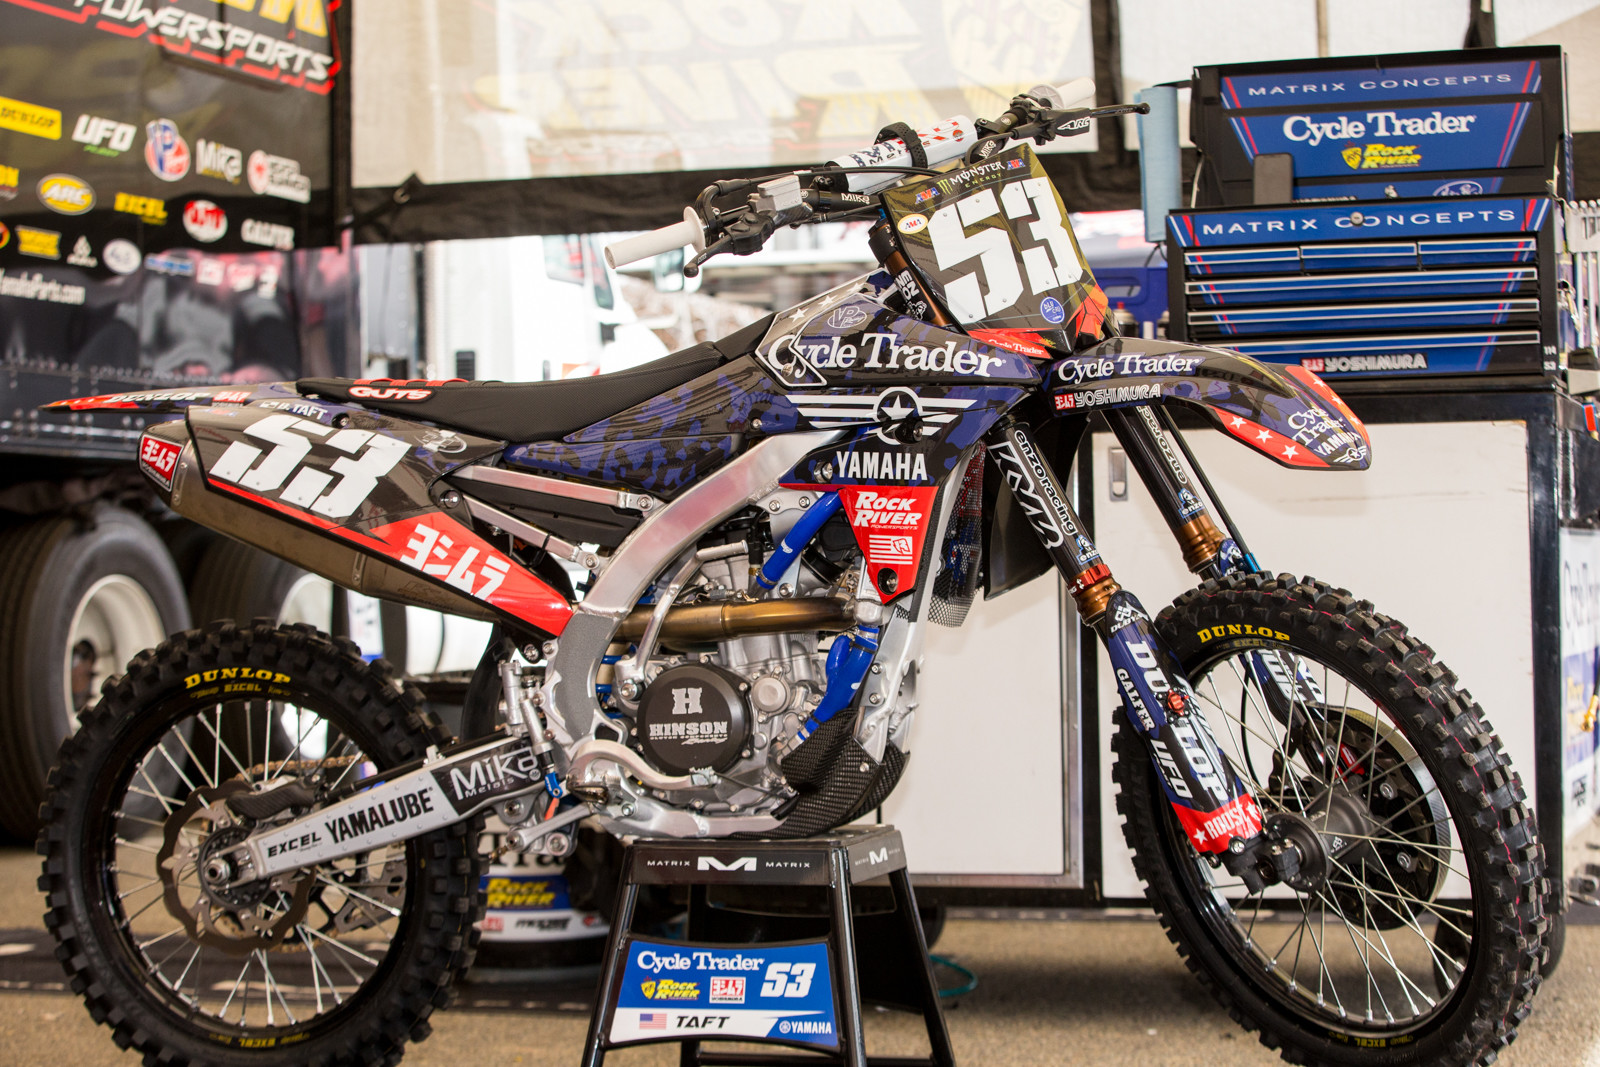 Roost MX went all in for the Cycle Trader/Rock River Yamaha team, she's a looker.